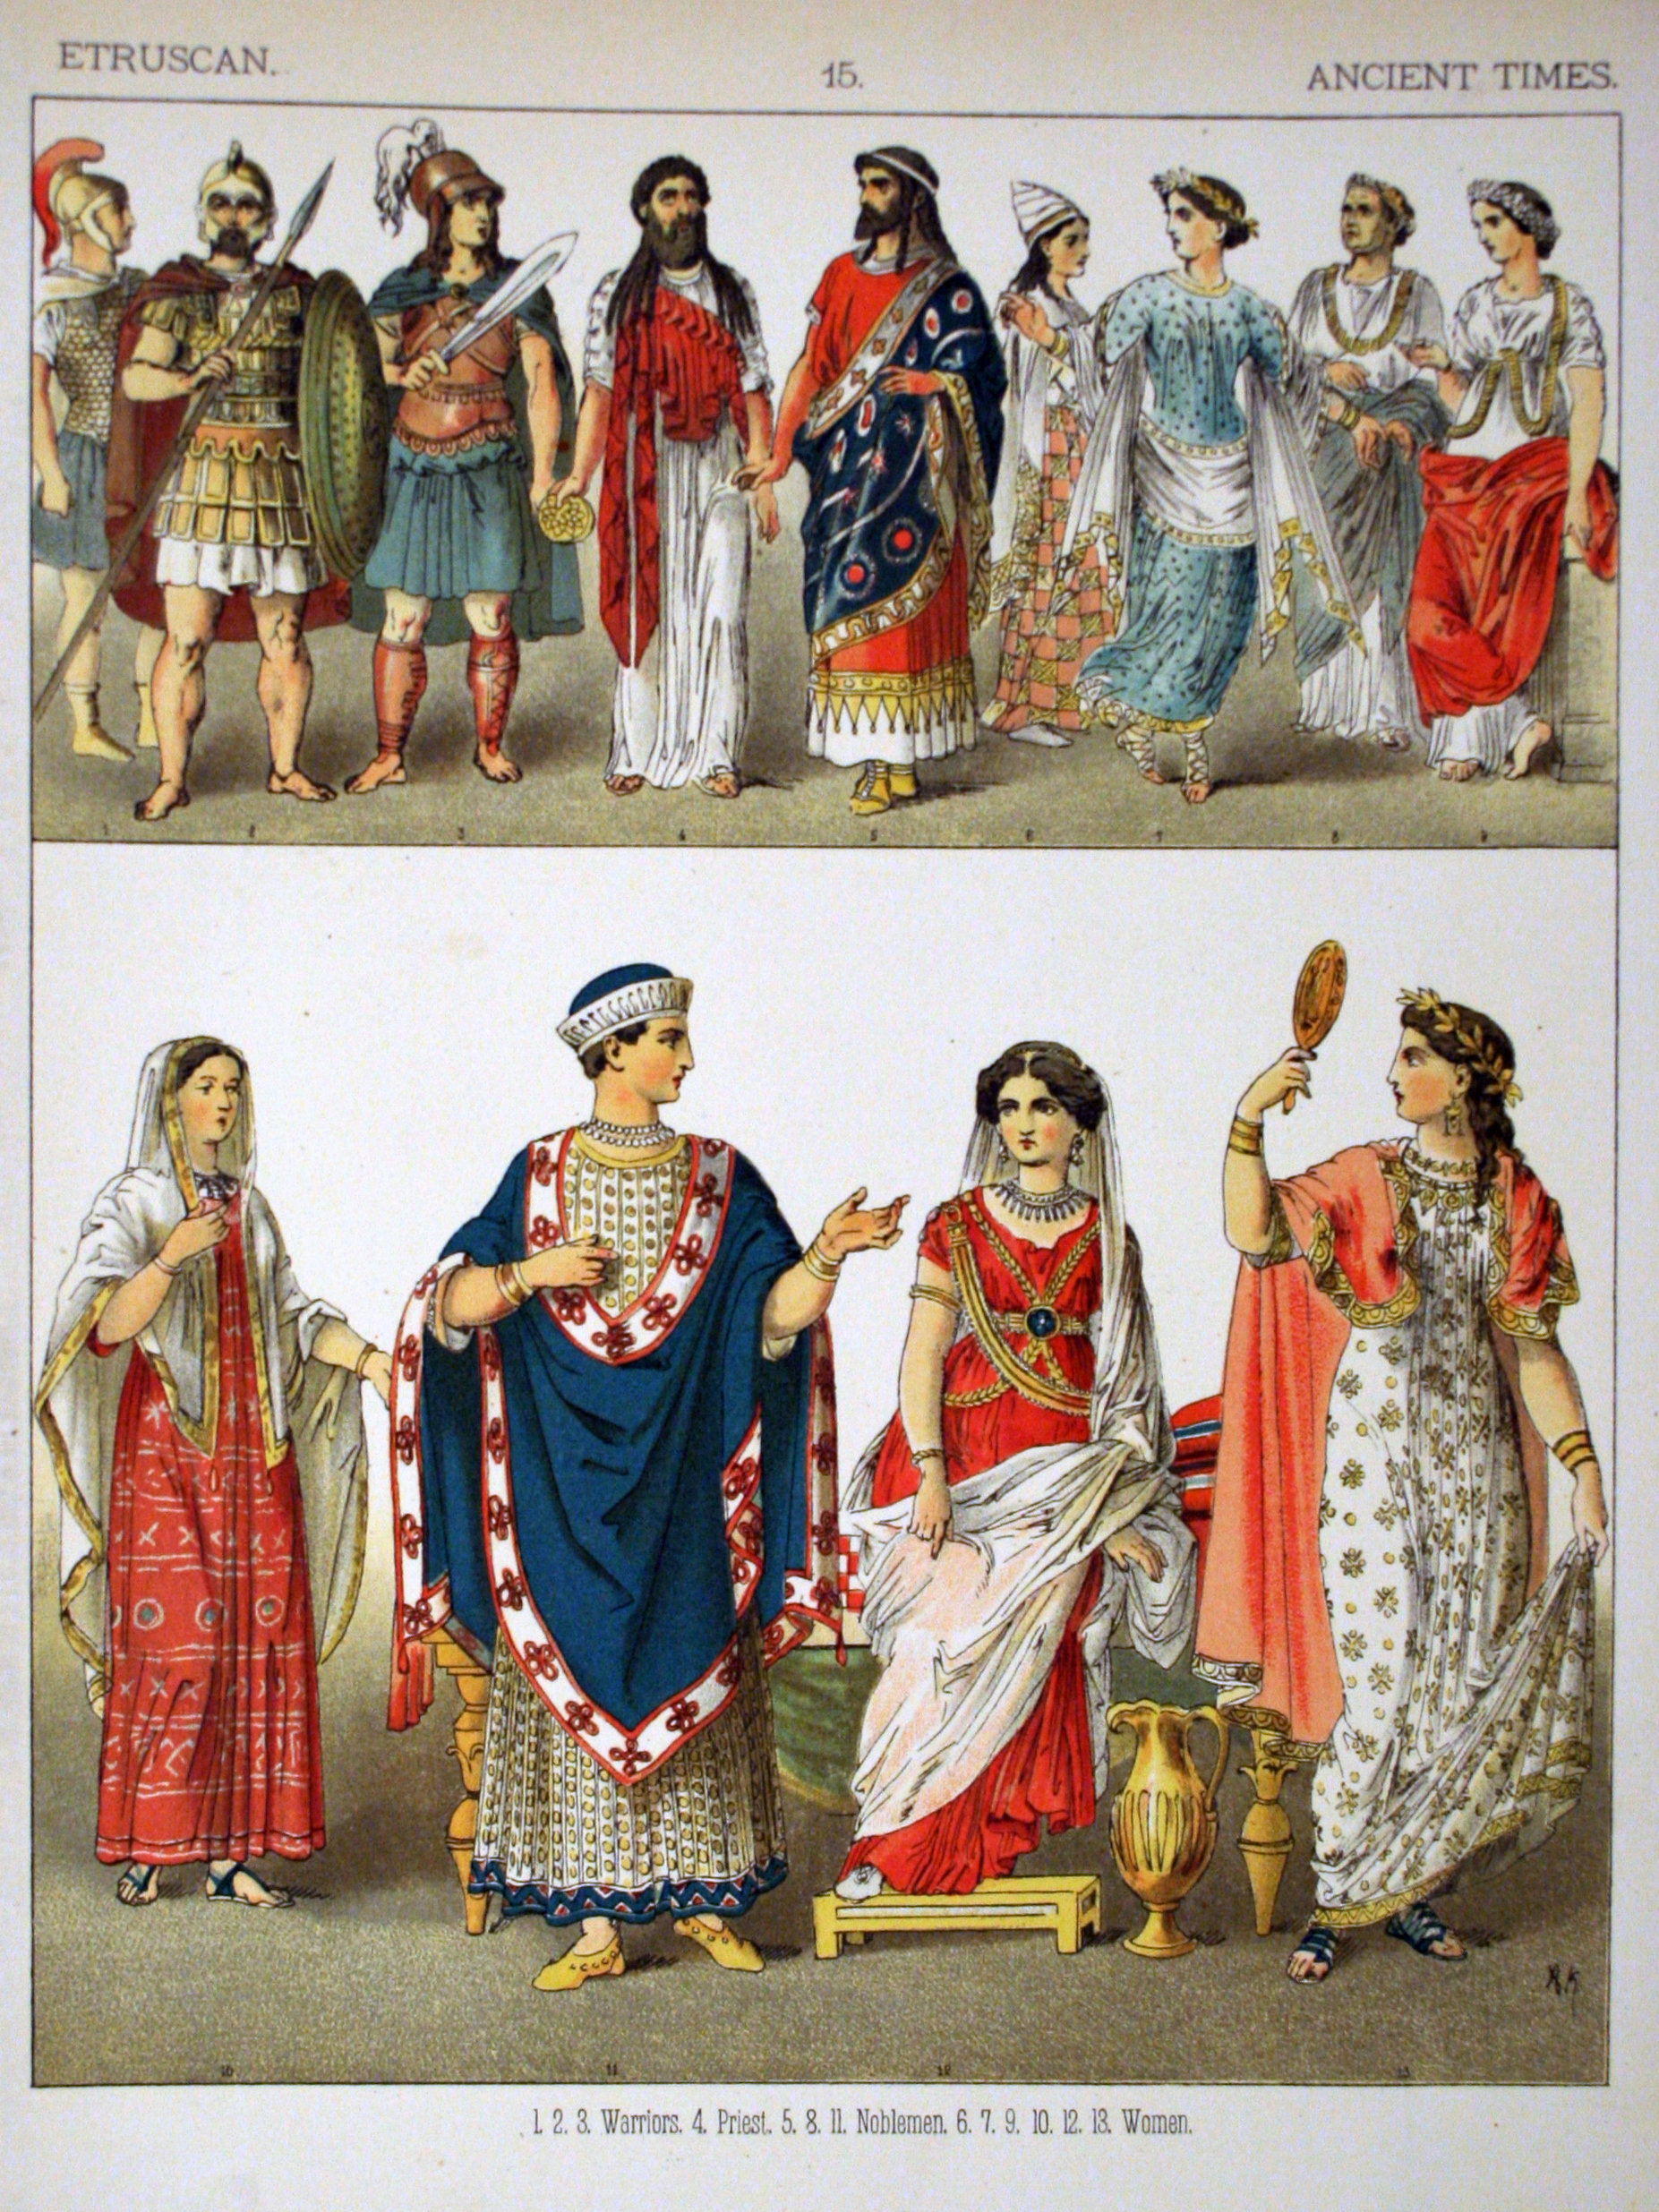 the etruscans ancient history If there were a prize for getting unfairly bad-mouthed in ancient history, etruscan women would likely win hands down the greeks and later romans said terrible things about them.